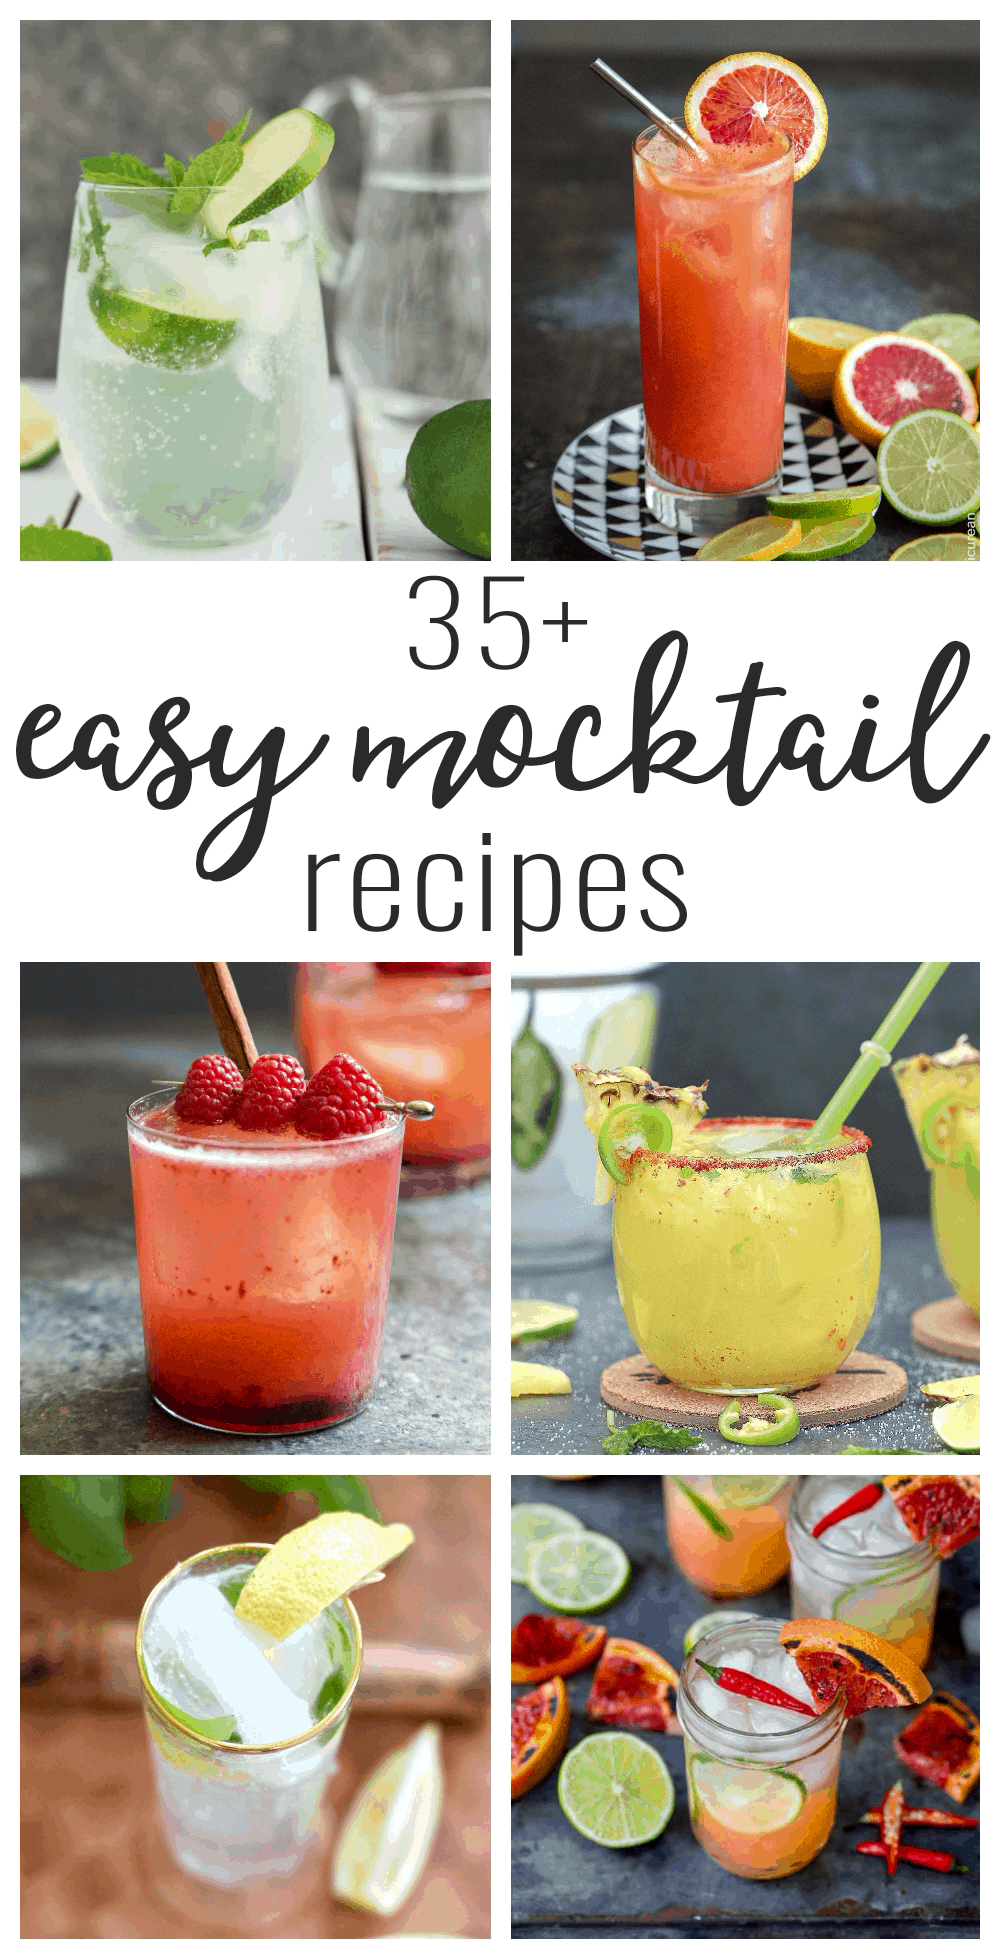 recipe roundup of virgin drinks and mocktail recipes